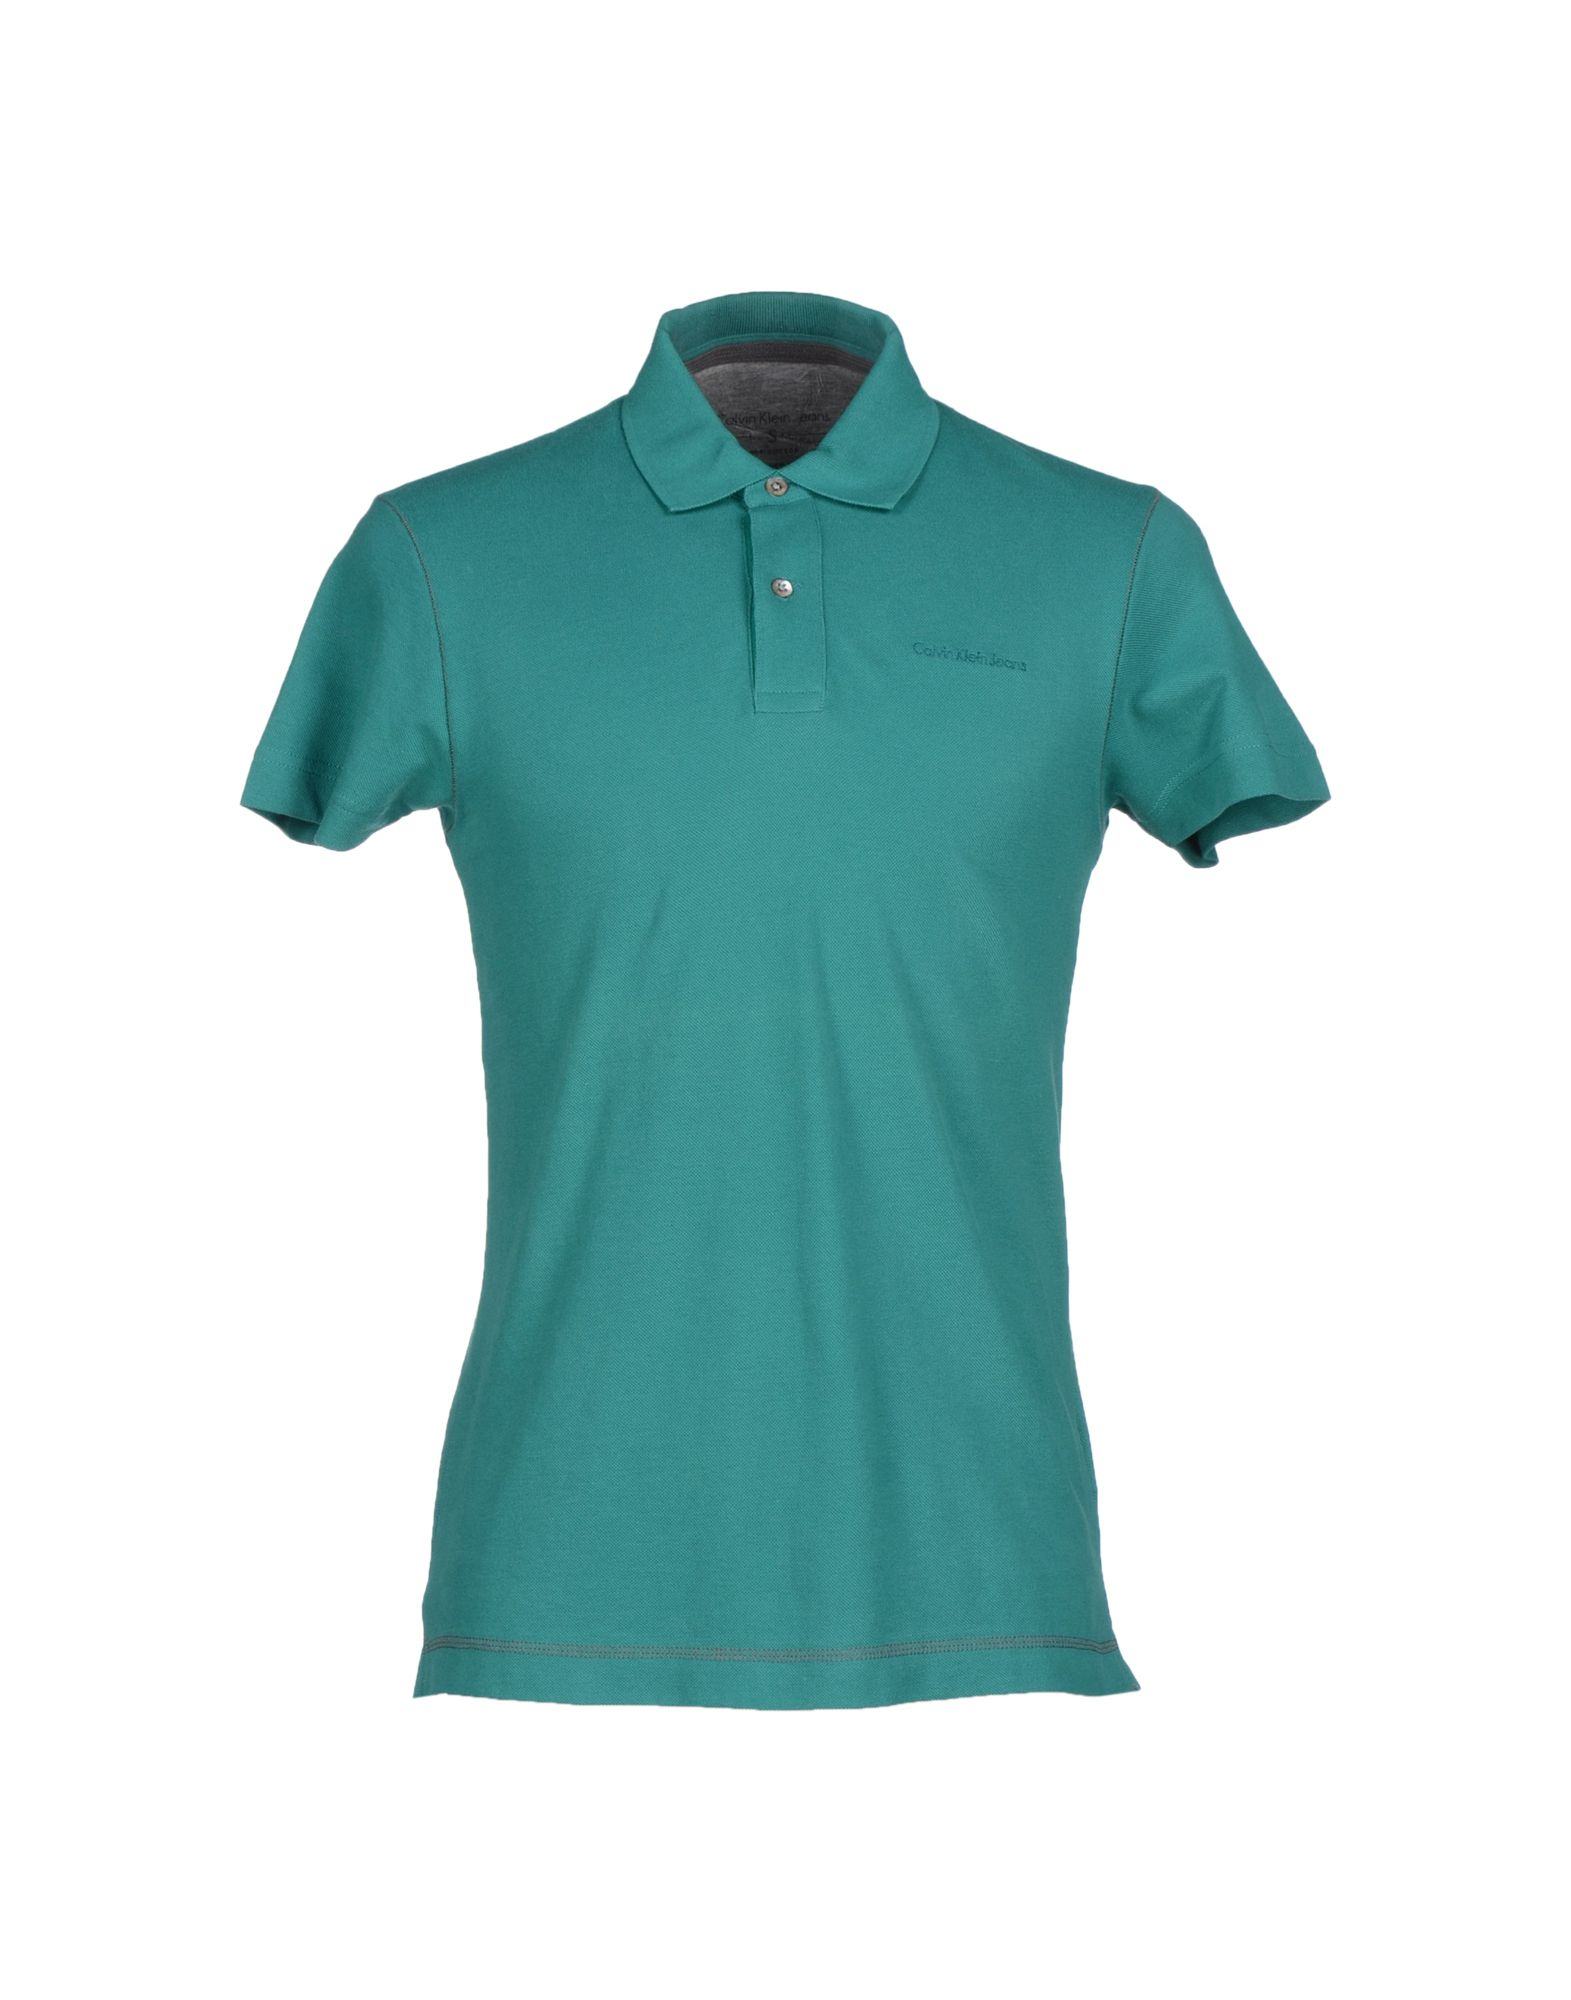 Calvin klein jeans polo shirt in teal for men green lyst for Mens teal polo shirt